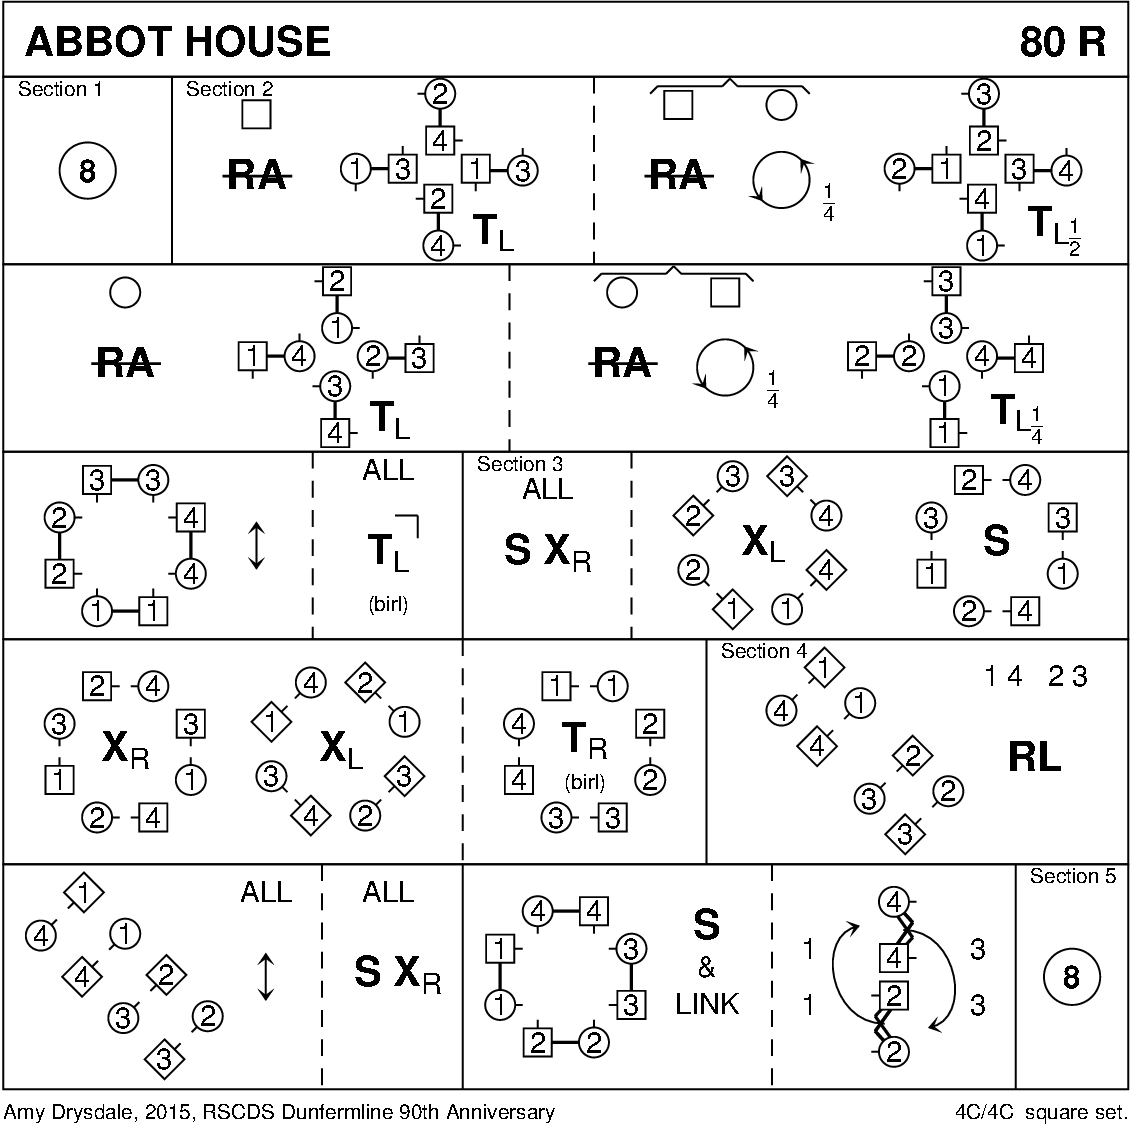 Abbot House Keith Rose's Diagram